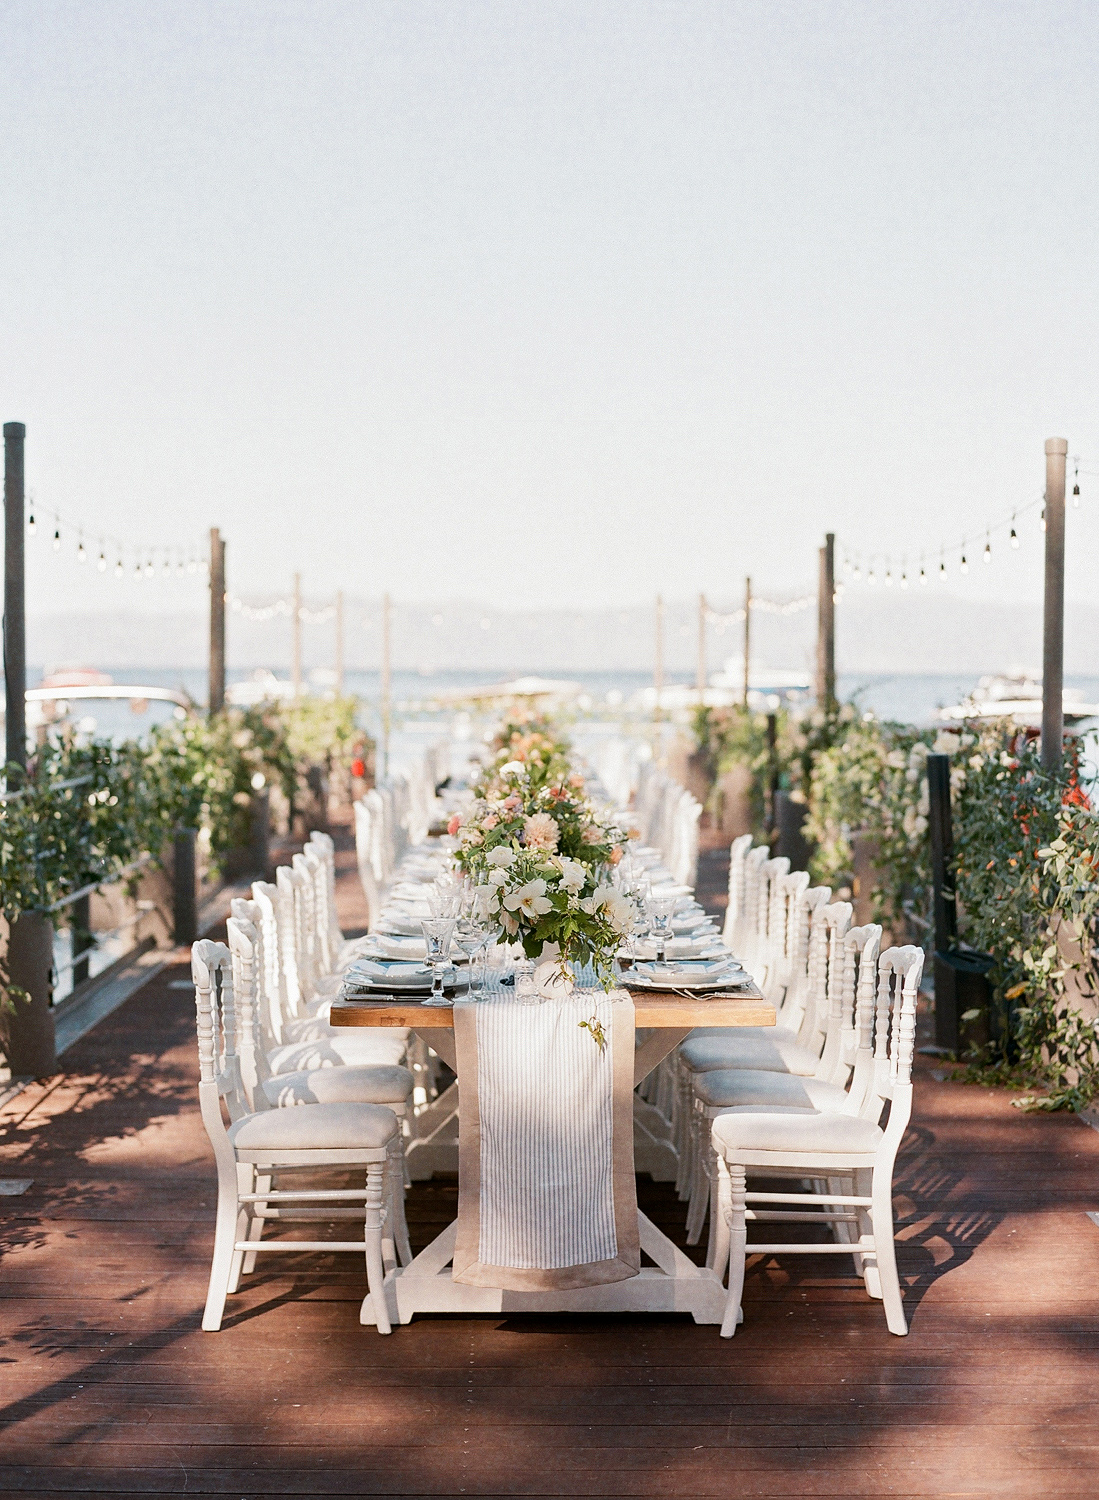 Natalie and Grant wedding outdoor farm table with table runner